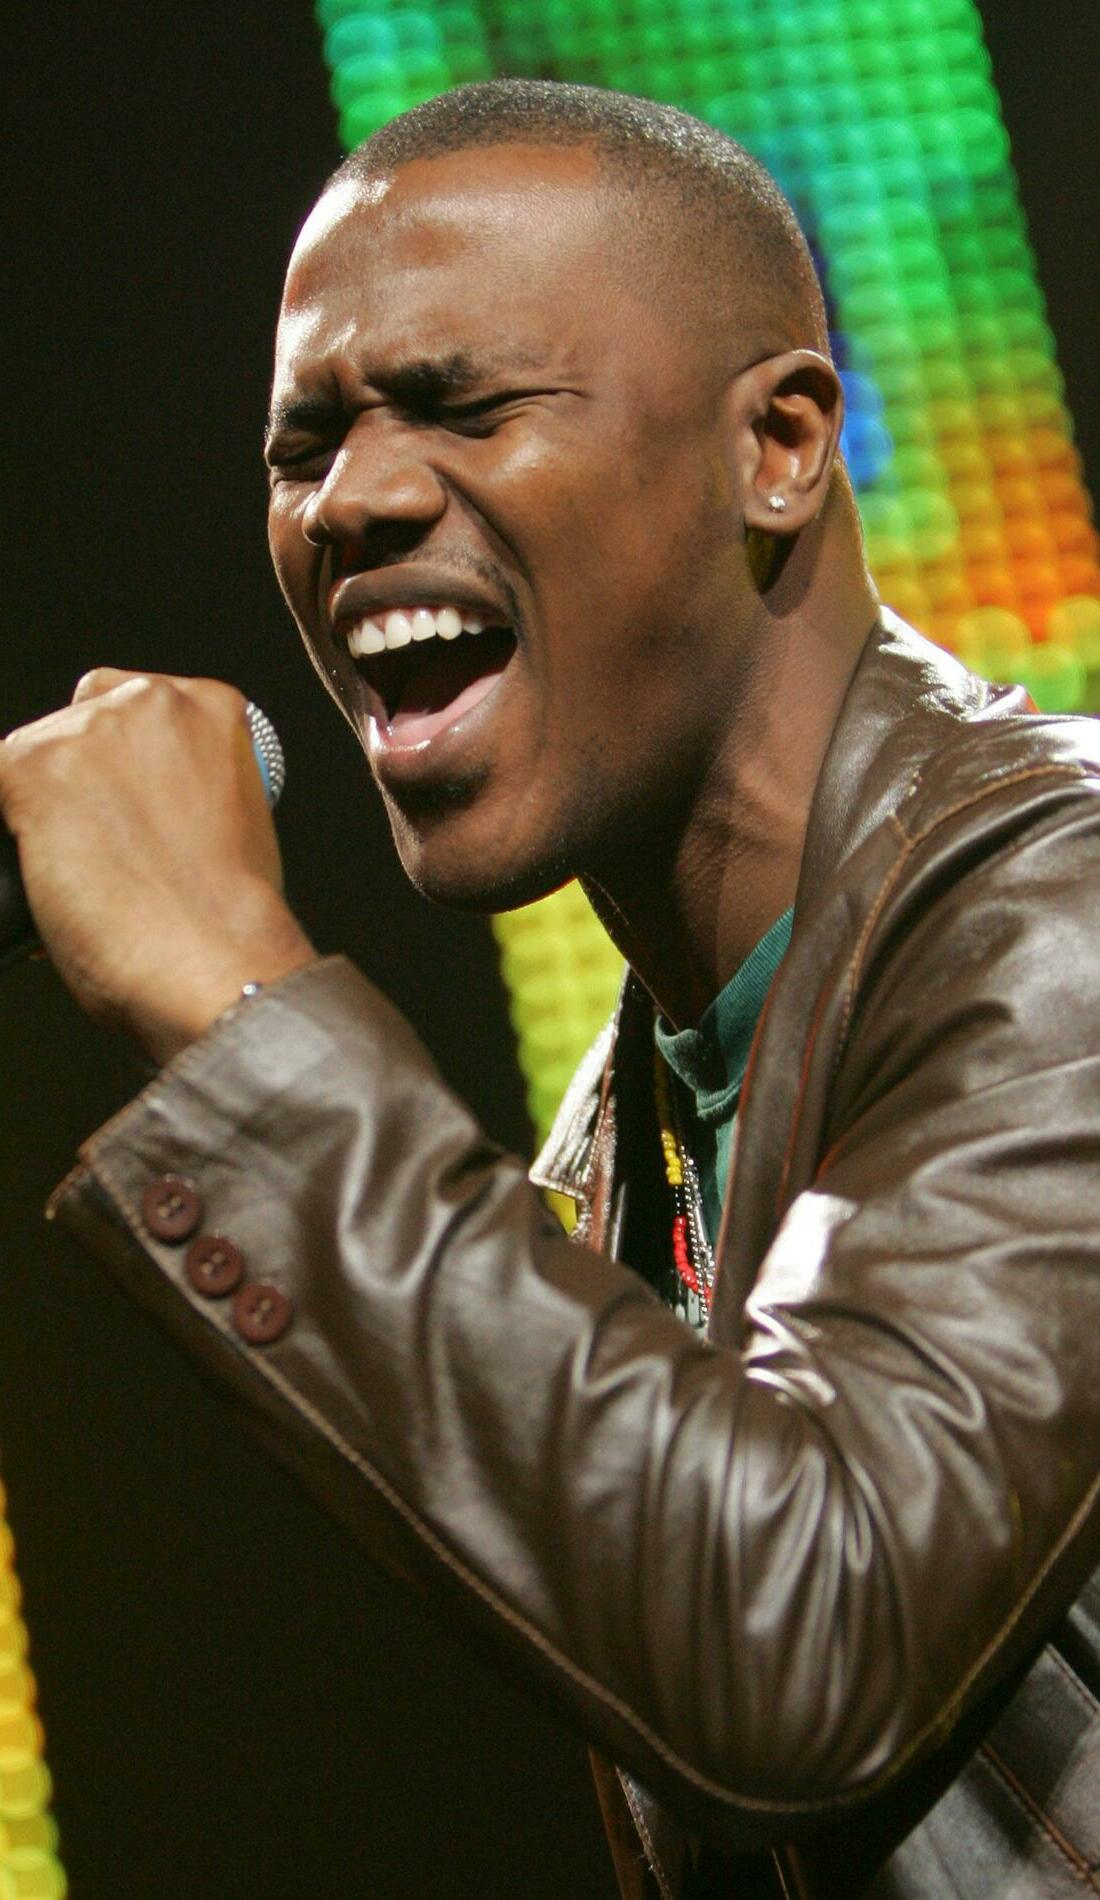 A Kevin Lyttle live event